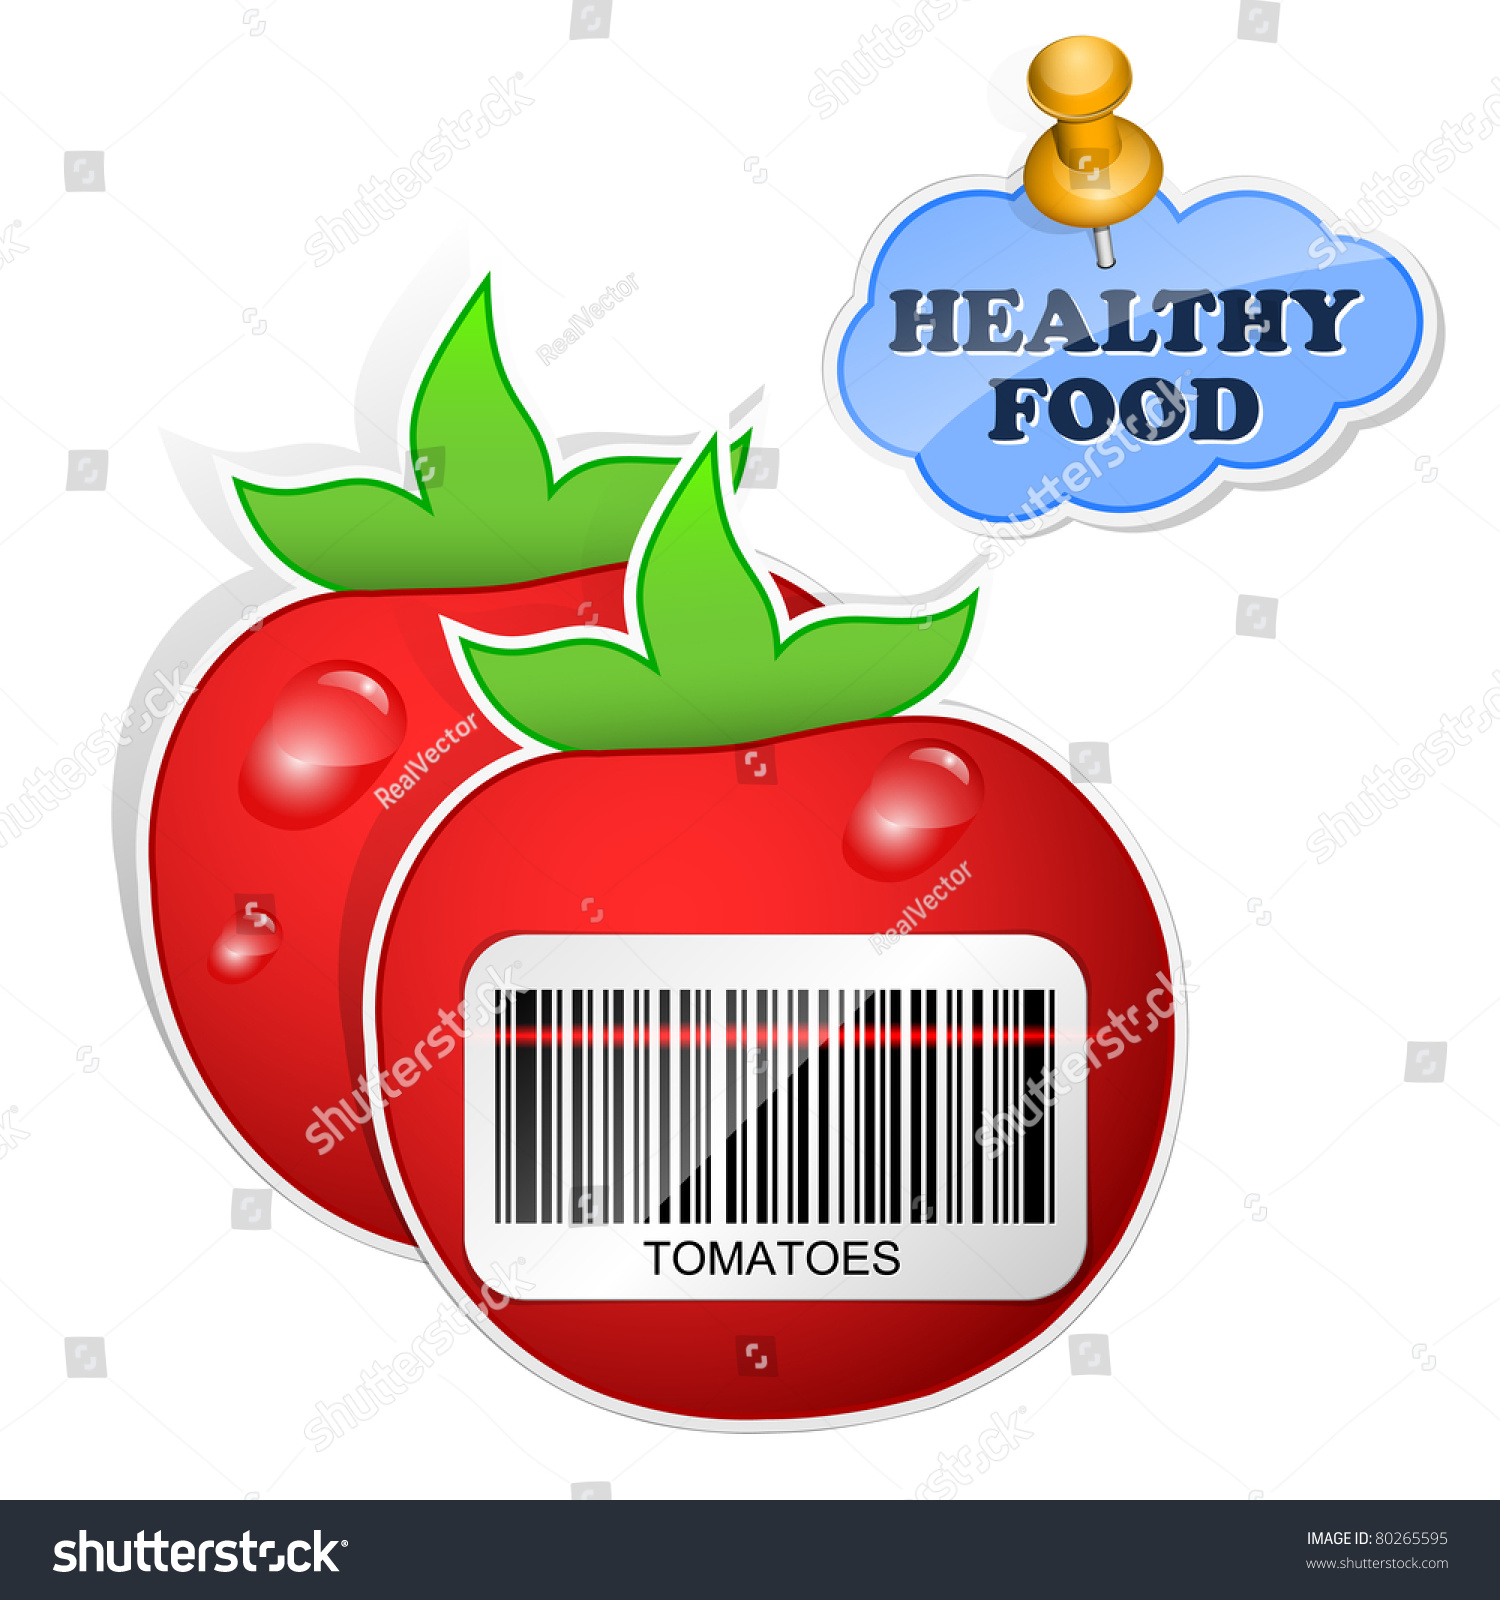 Icon tomatoes barcode by healthy food stock vector for Barcode food